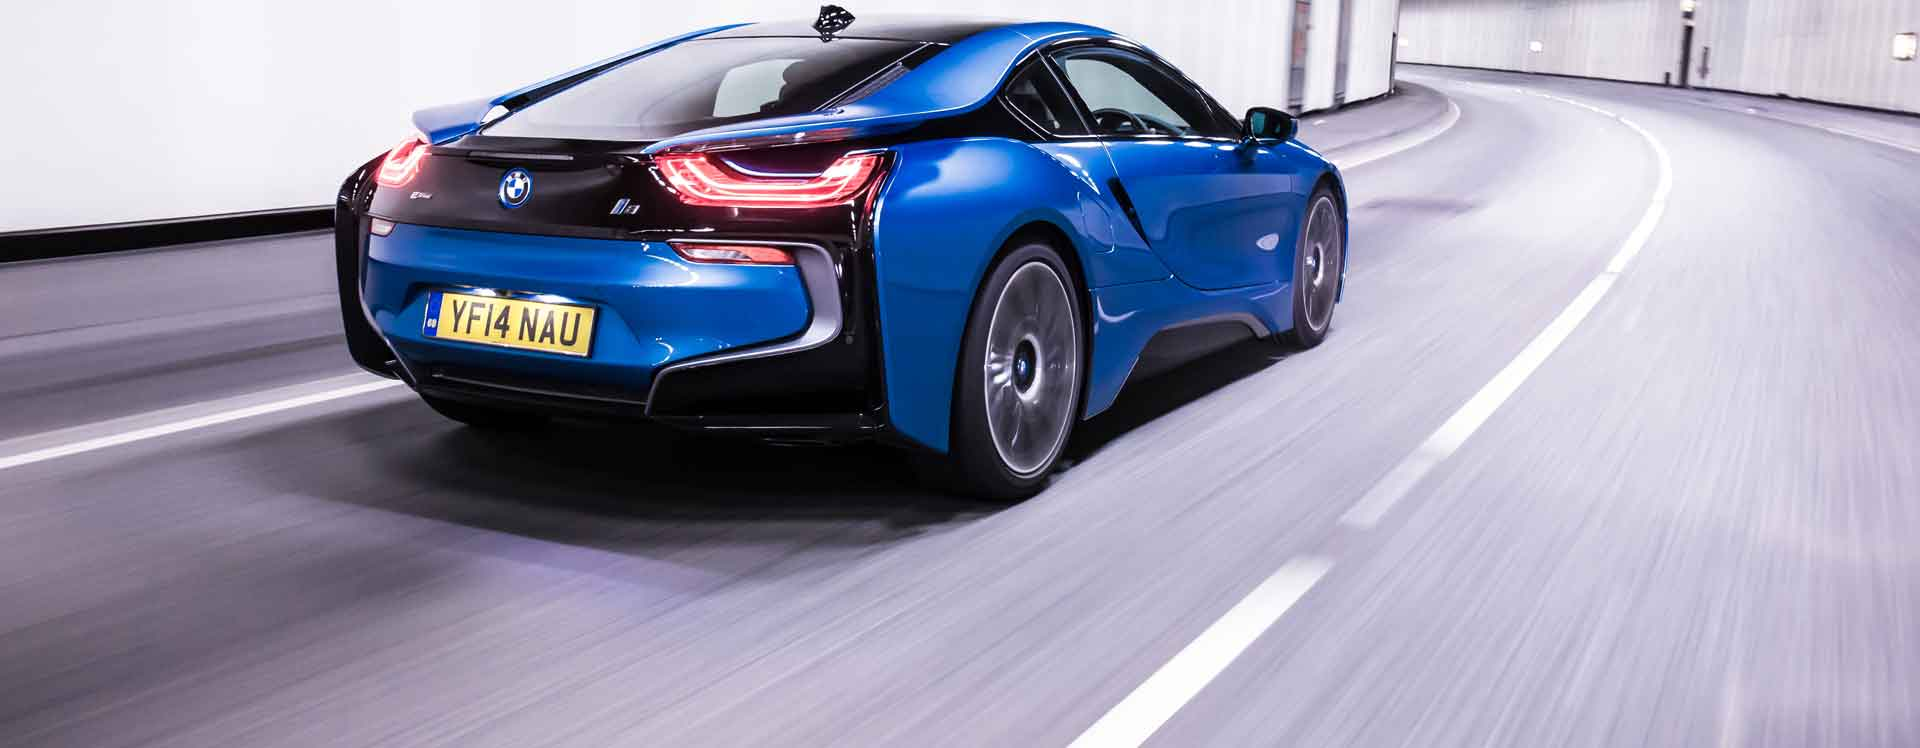 Guide to BMW i8 Specs, Engine, Top Speed, and Horsepower